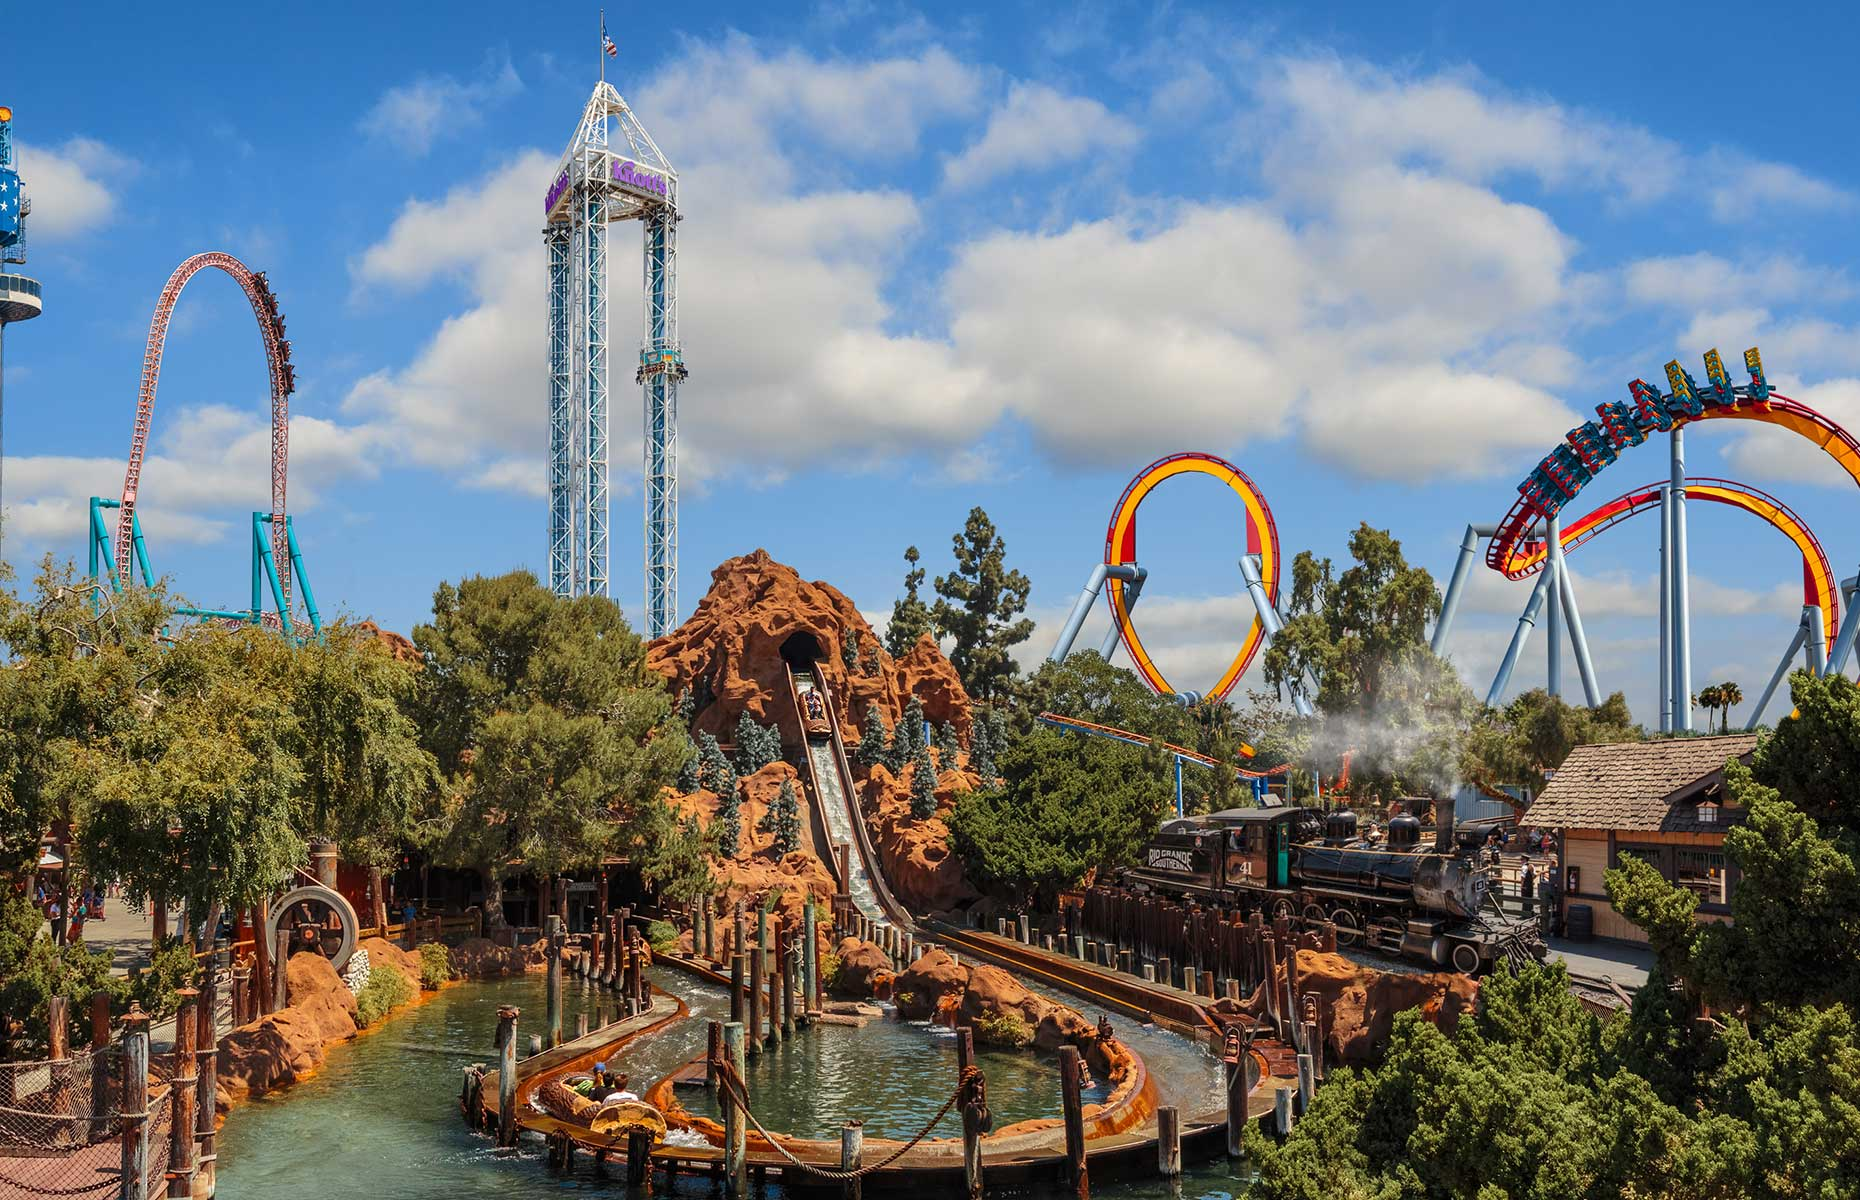 Knott's Berry Farm theme park in Anaheim, California